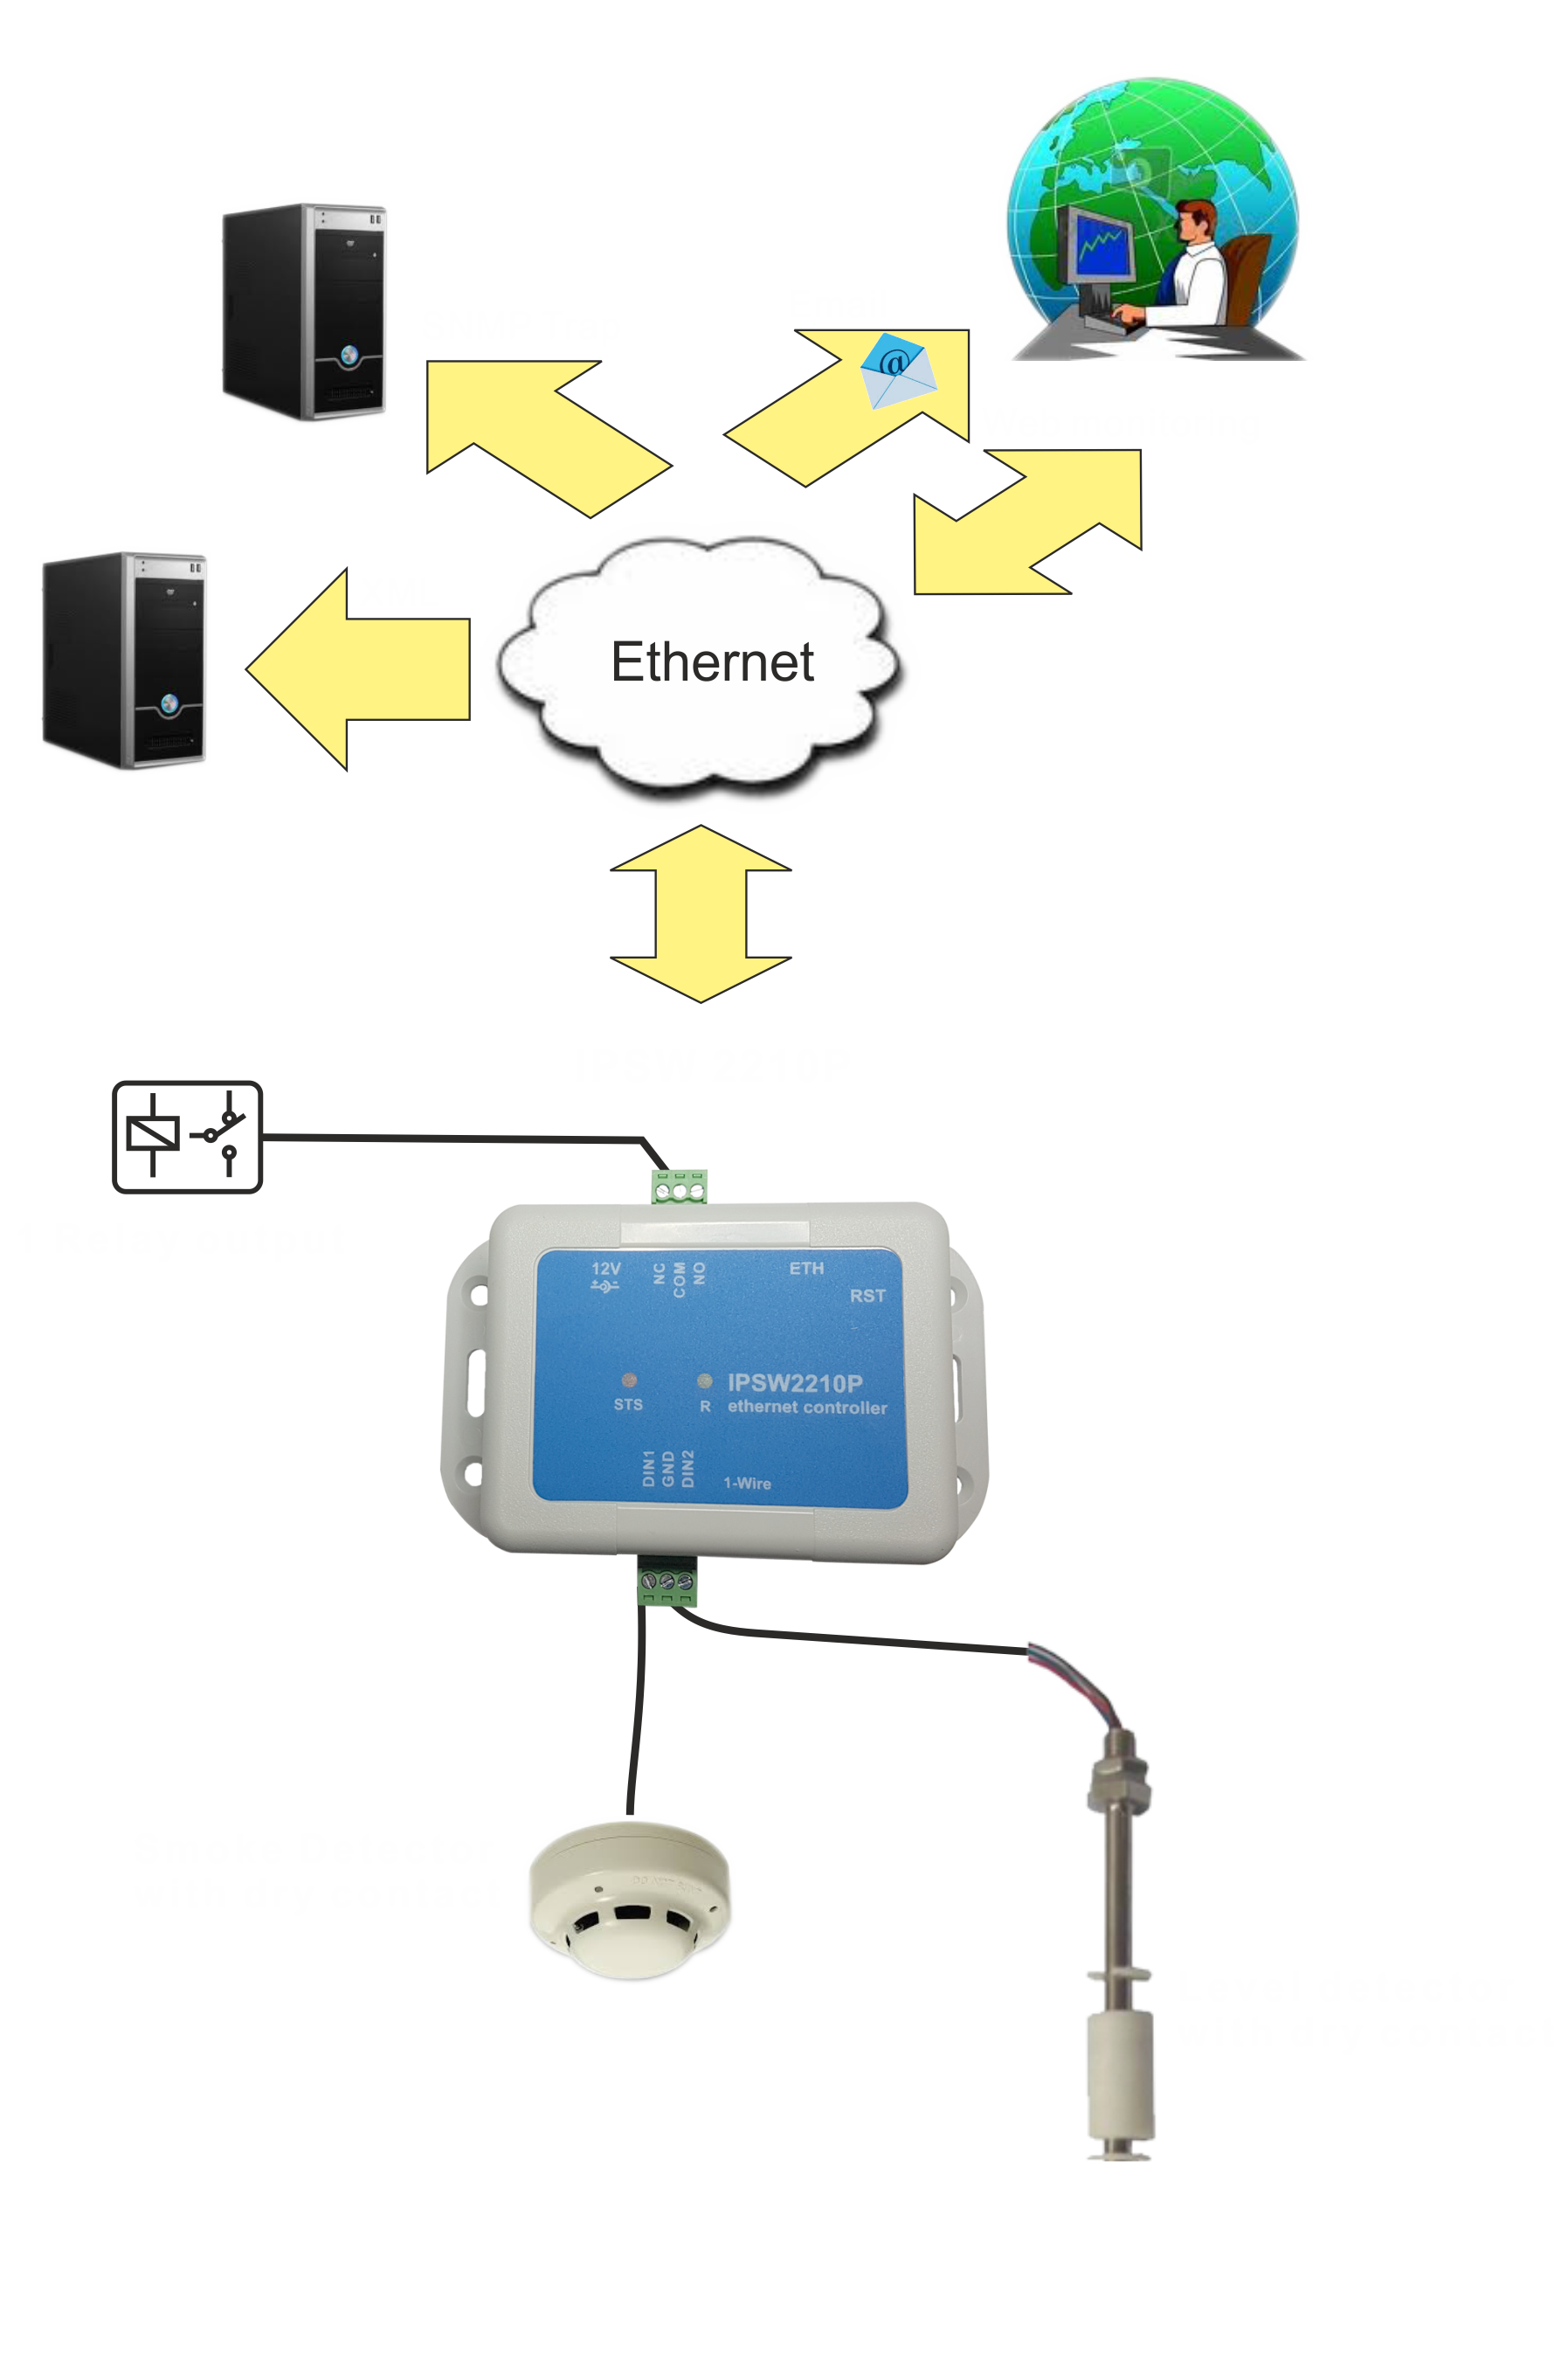 Ethernet Ip Controller Ipsw2210